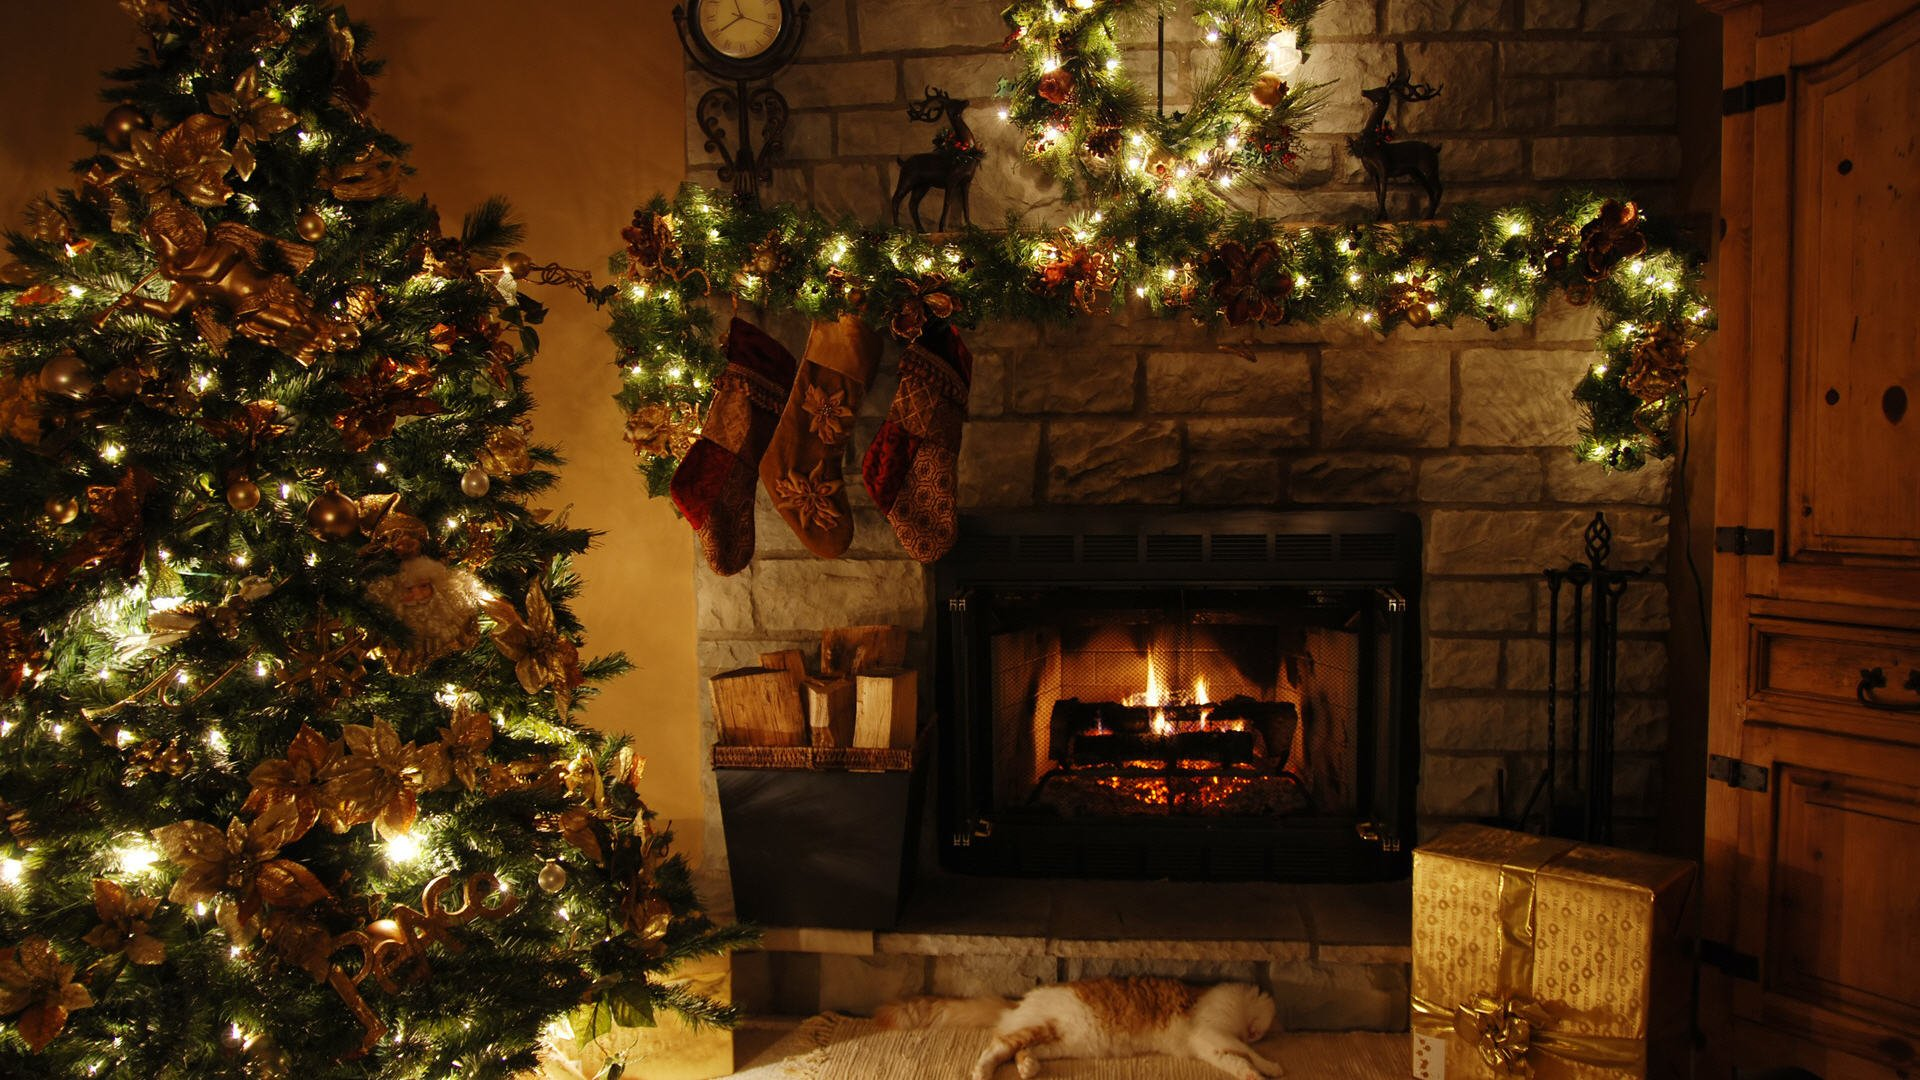 Free Fireplace Wallpaper: 4K Christmas Fireplaces Wallpapers High Quality